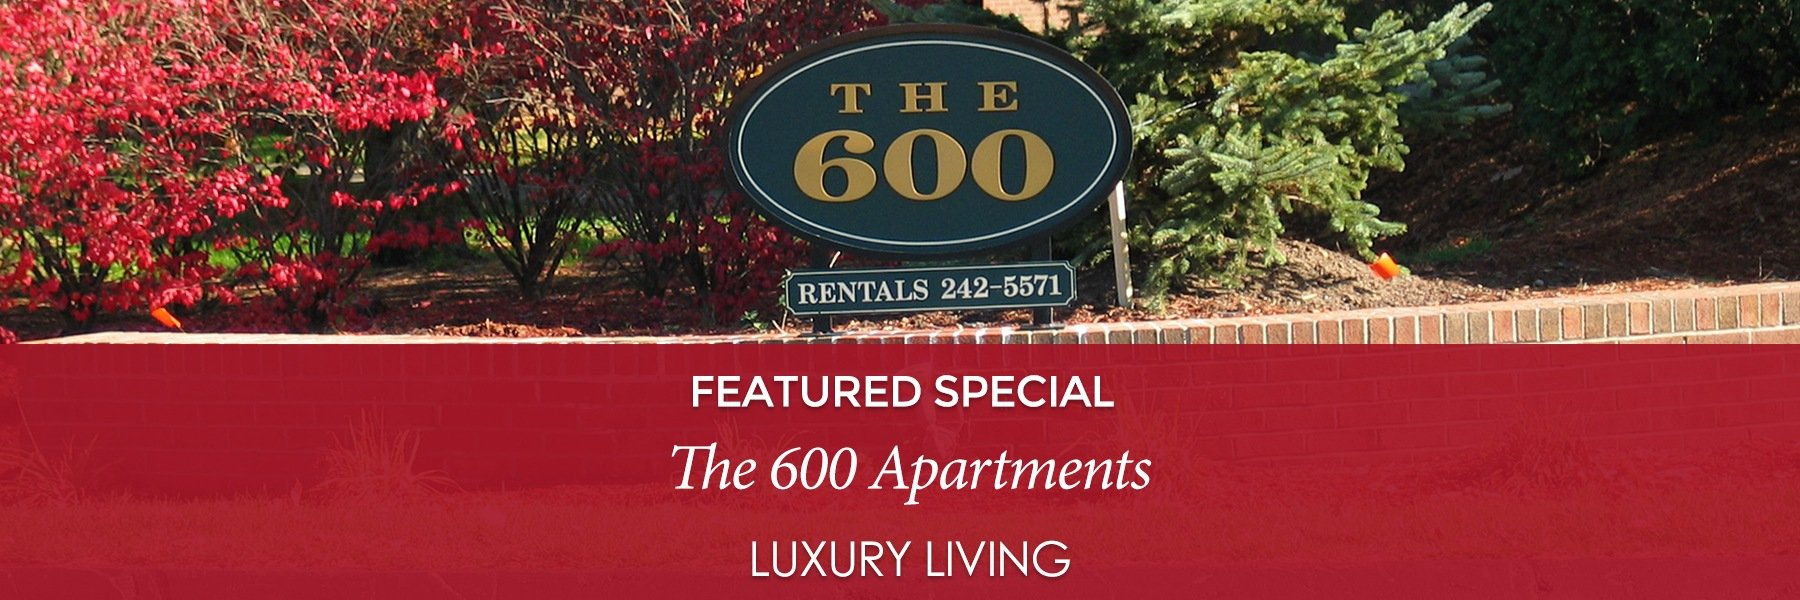 The 600 Apartments